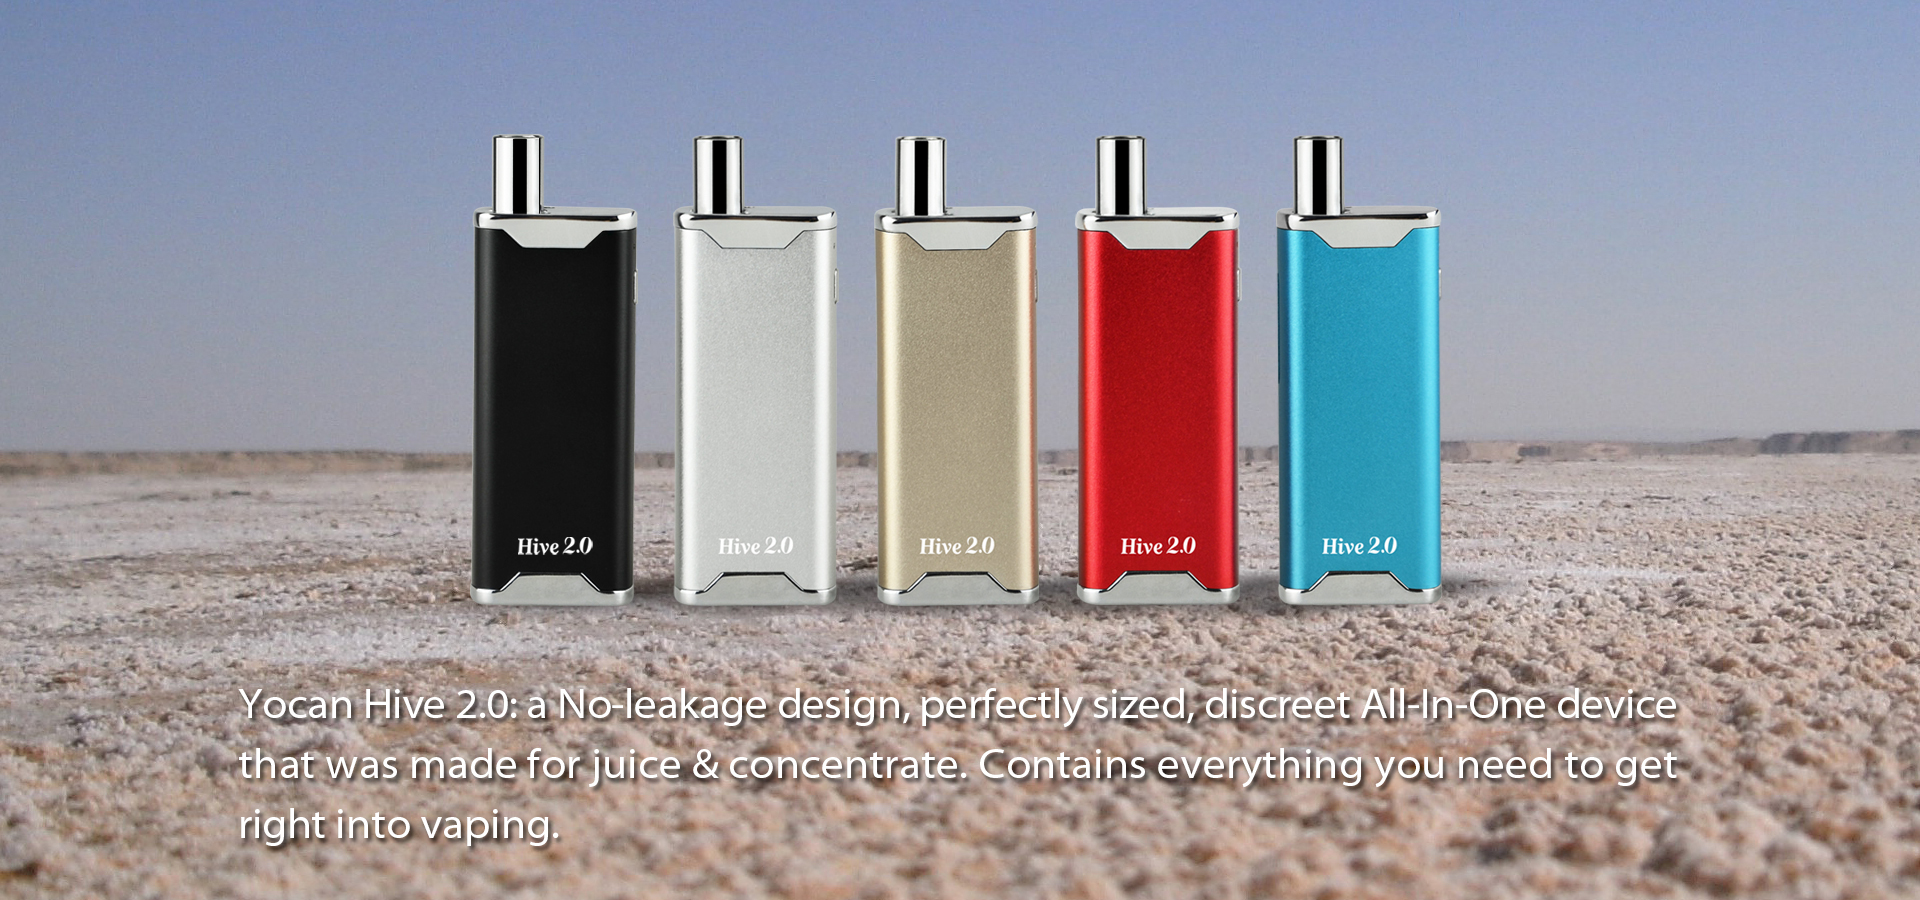 Yocan Hive 2.0 is an All-in-one Device for Juice Or Wax Vape Mod